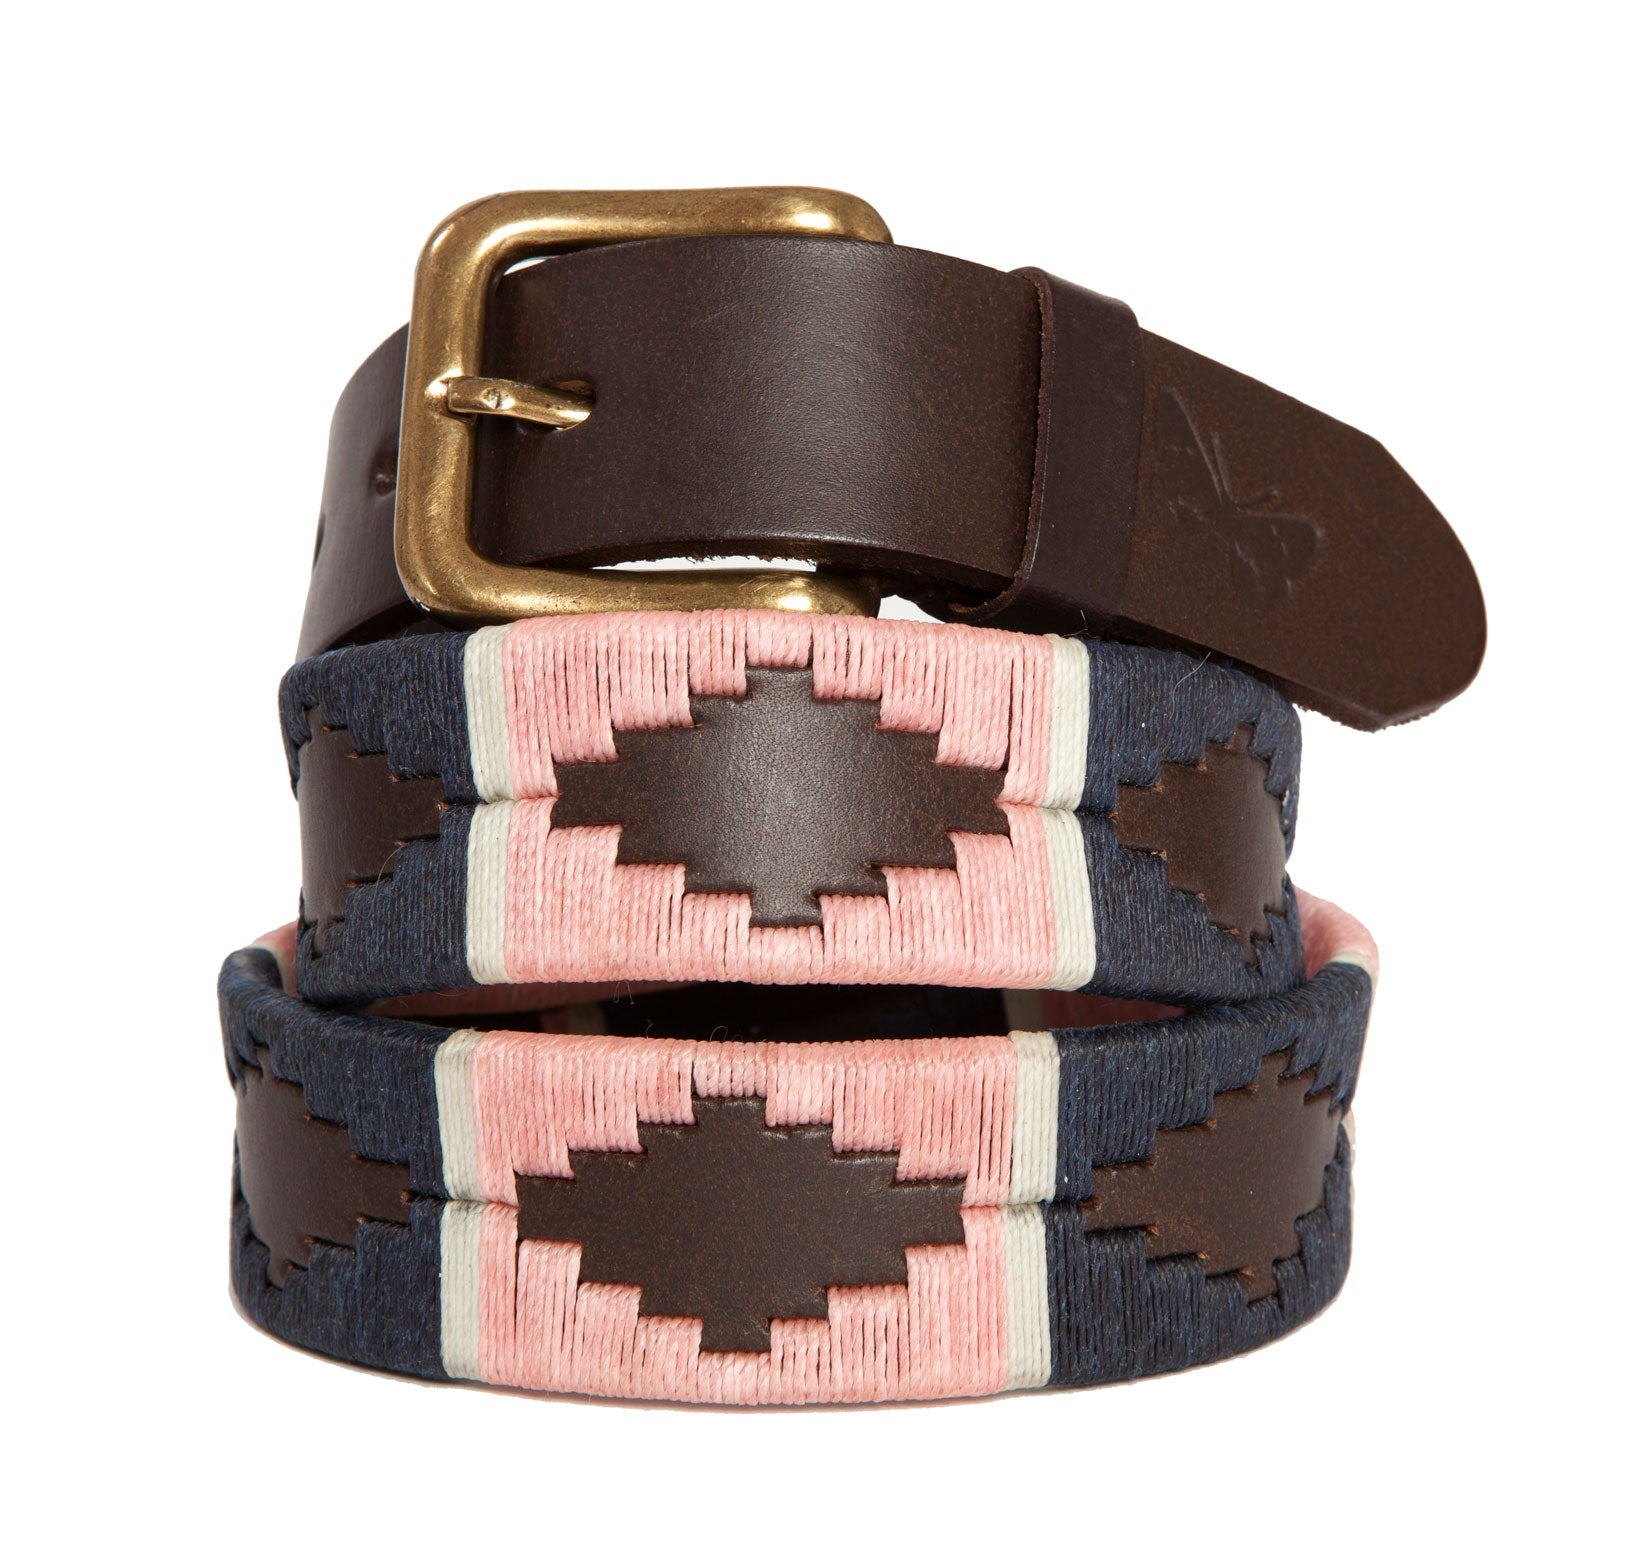 Argentinean-made embroidered leather polo belt made and designed exclusively by Regent with a 3.5cm width, brass-style buckle and hand-stitched diamond design, coming in multiple sizes.